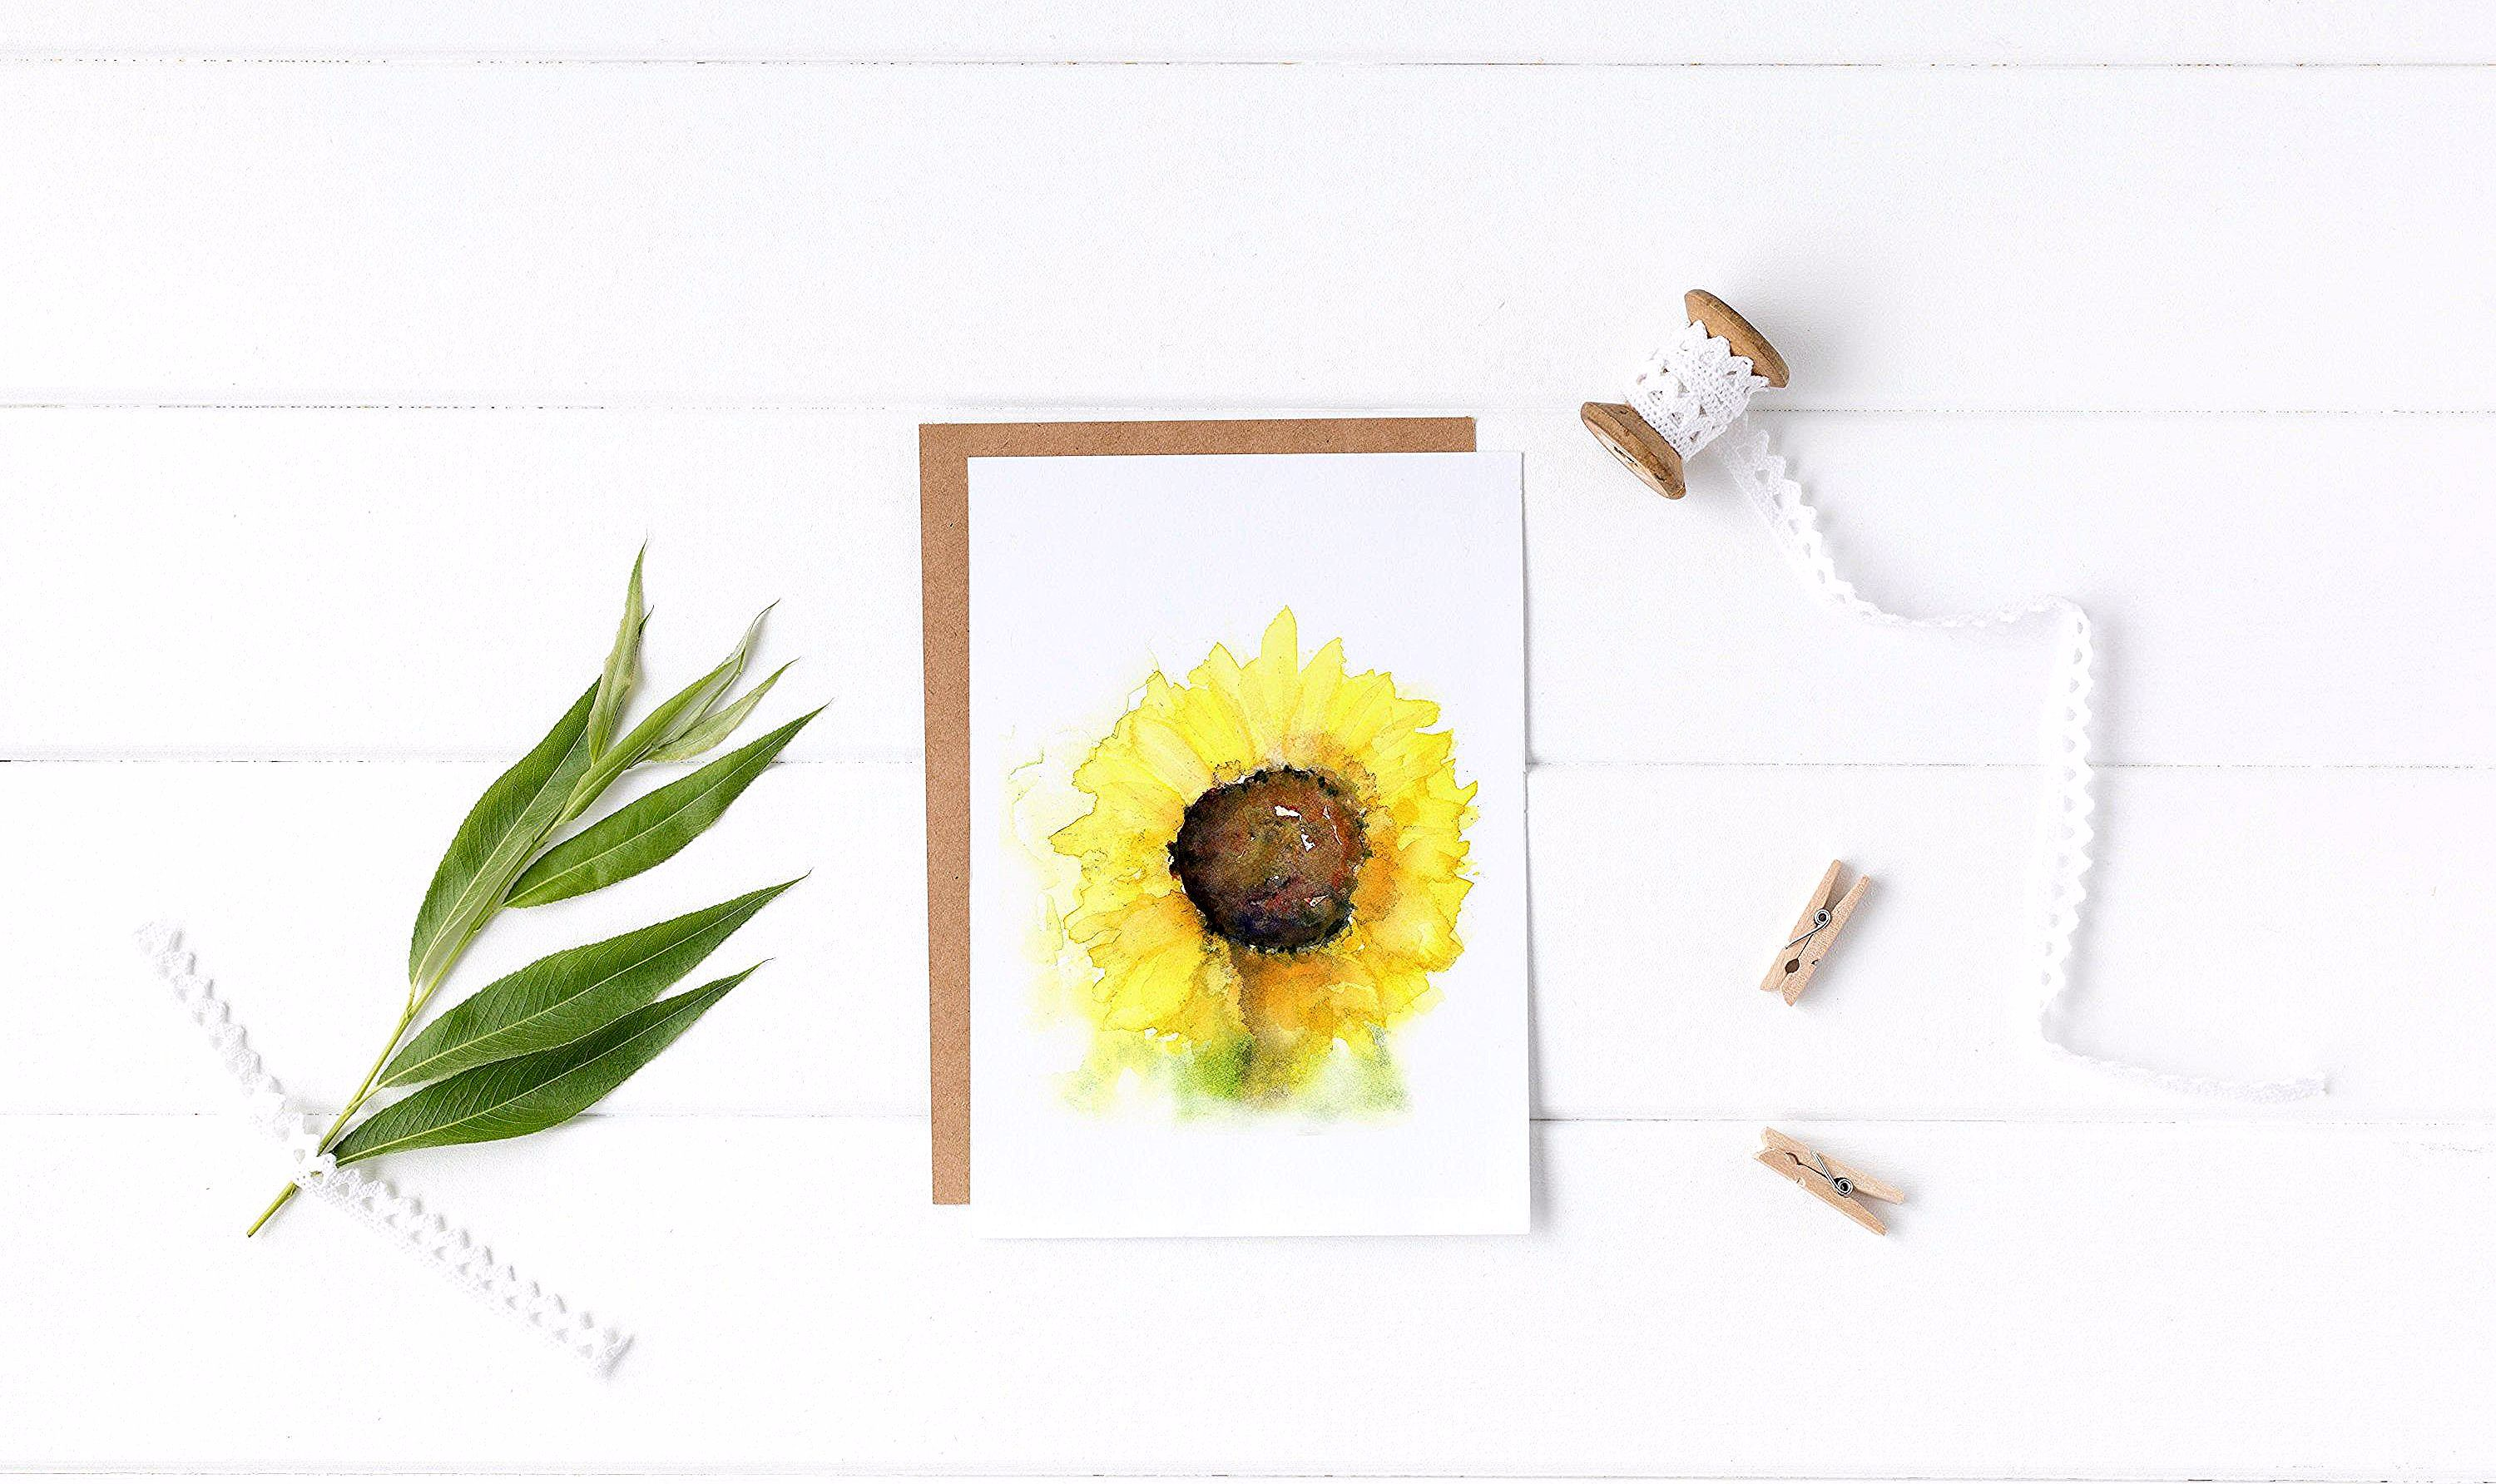 Sunflower Watercolor Card – Cheerful – Loose Watercolor - Summer - Flower - Atmospheric - Colorful - Birthday - Get Well Soon - Thank You #Watercolor #ArtistOriginal #GreetingCard #HandMade #AllOccasions #Summer #Cheerful #Colorful #GetWellSoon #Birthday